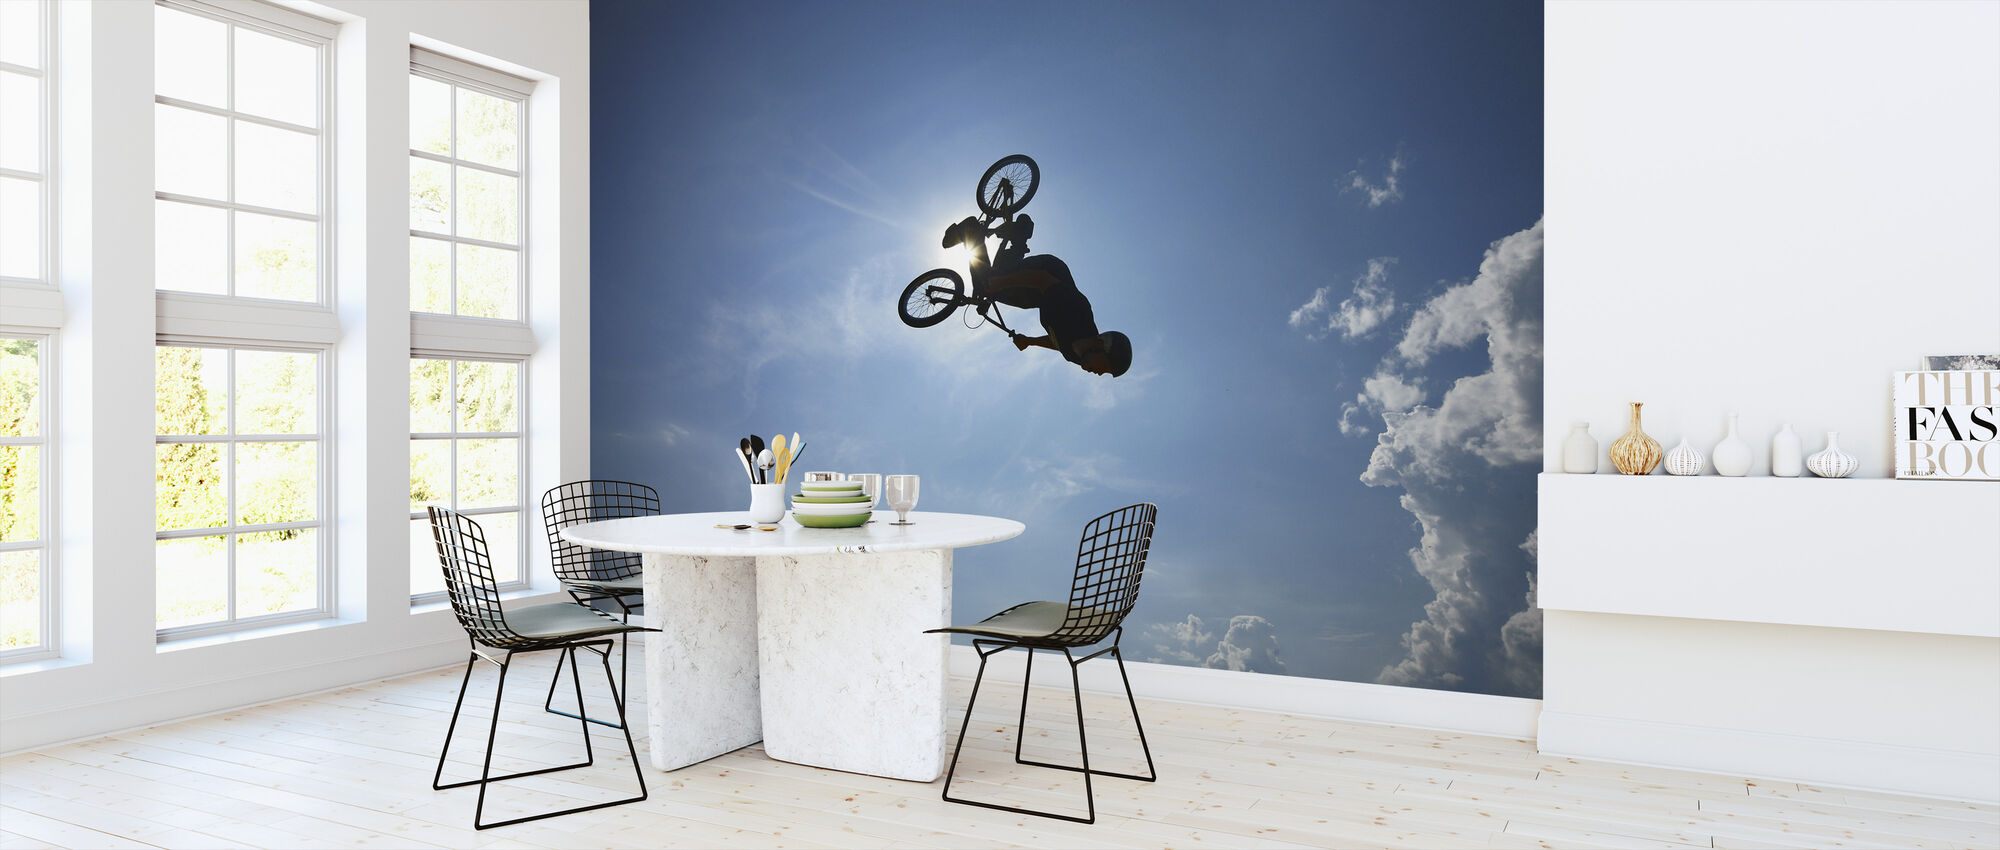 BMX Backflip - Behang - Keuken